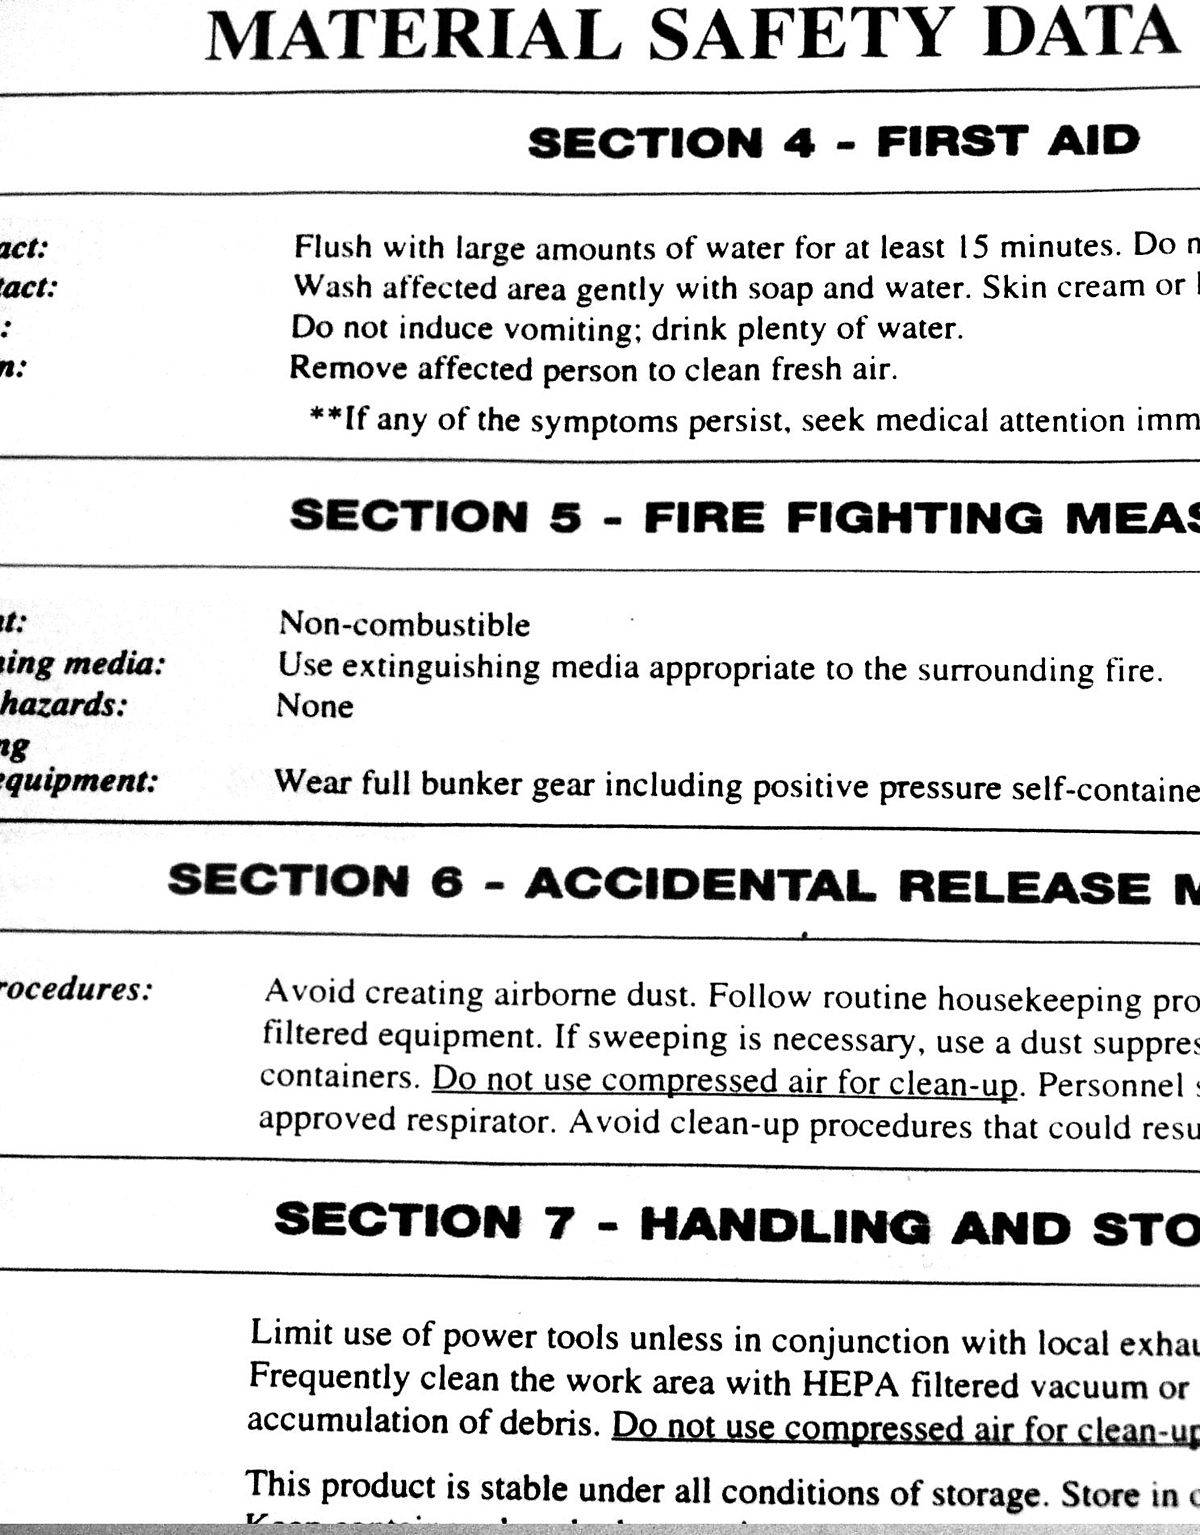 Material Safety Data Sheet (msds) Example